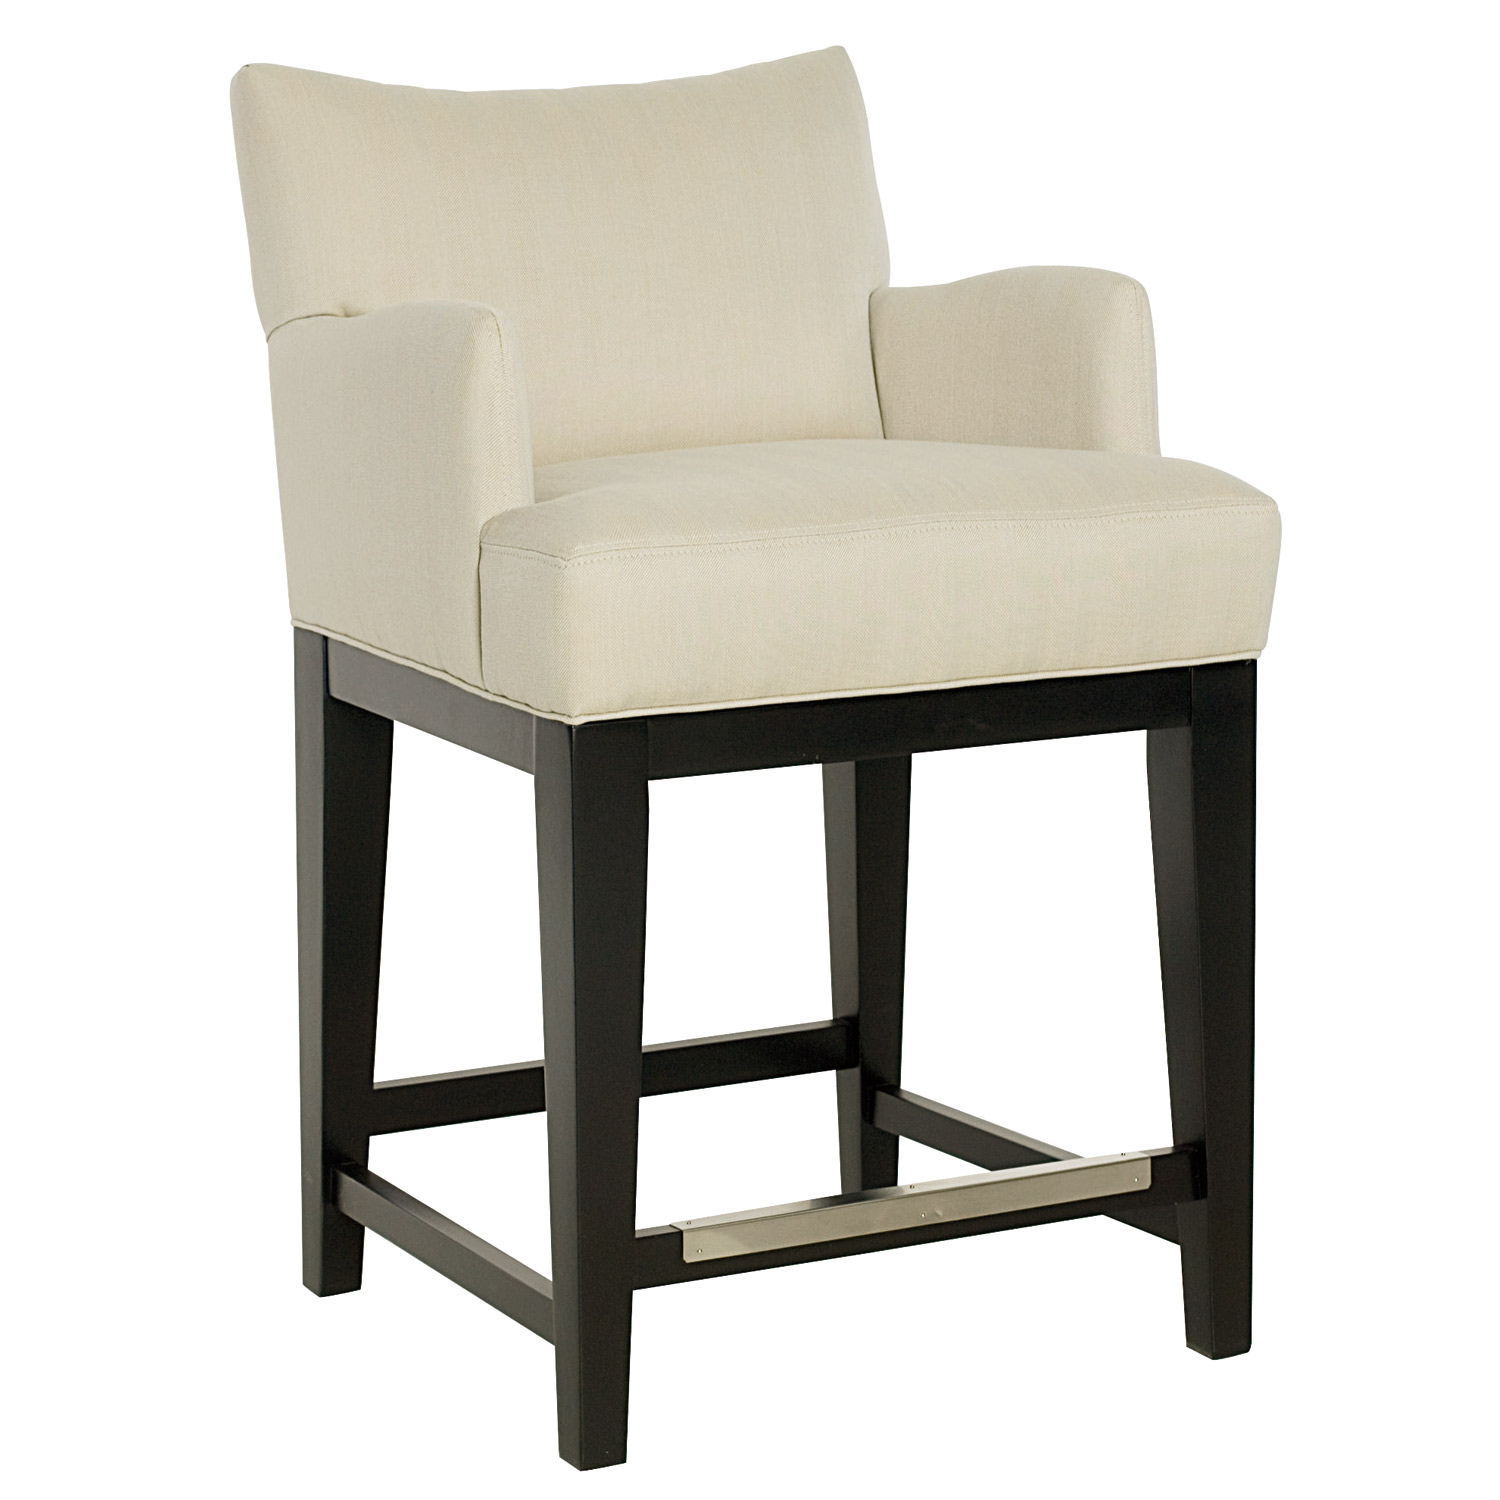 white chair bar stools backs  sc 1 st  HomesFeed & Upholstered Bar Stools with Backs | HomesFeed islam-shia.org